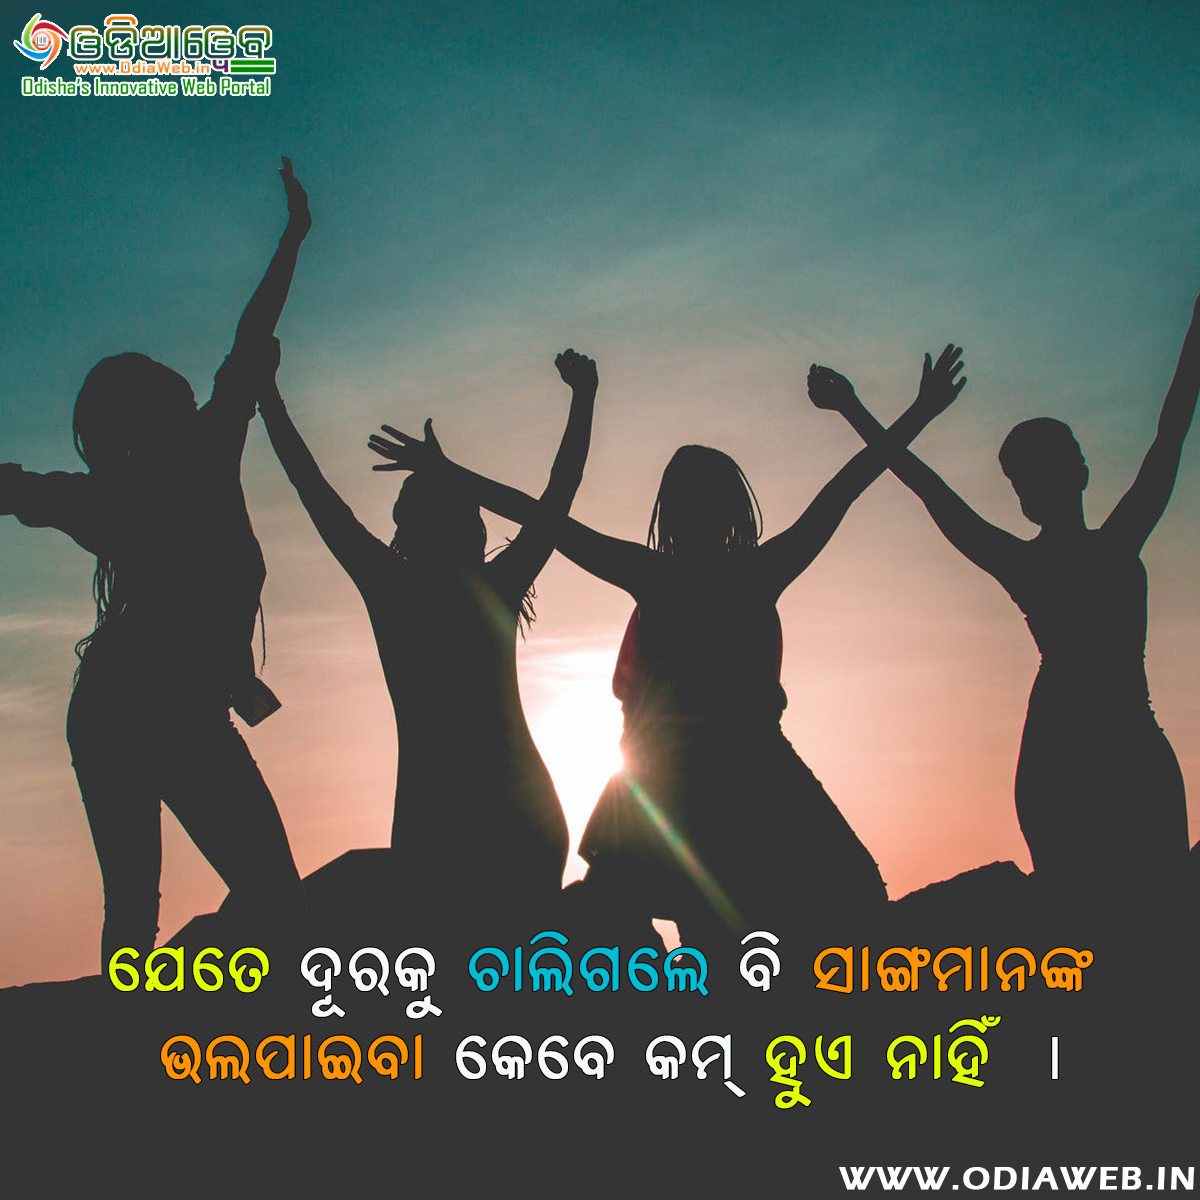 Odia quotes on Friendship